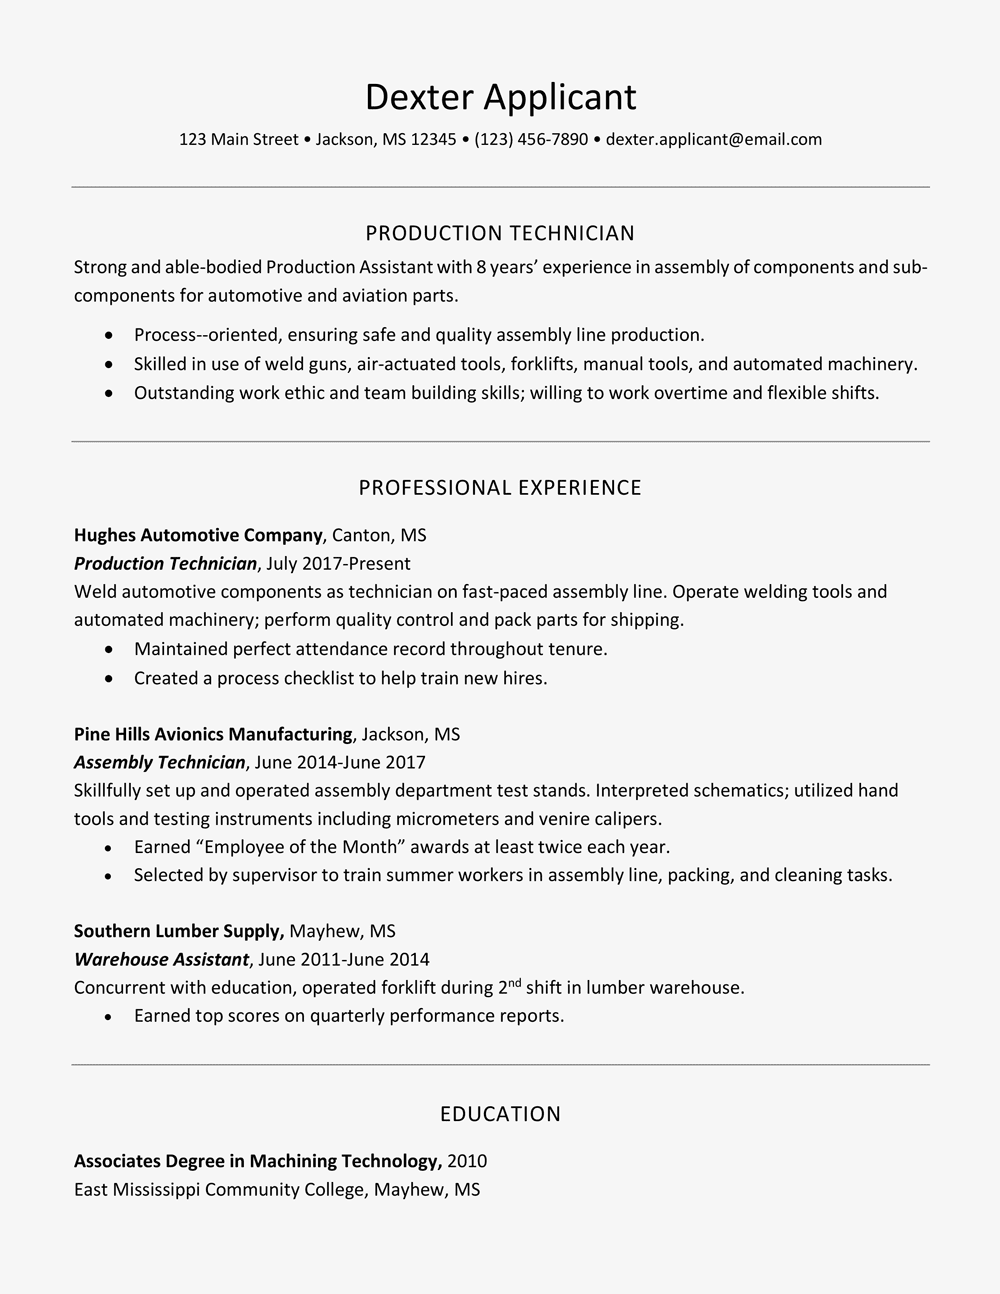 create a professional resume - How To Set Up A Resume